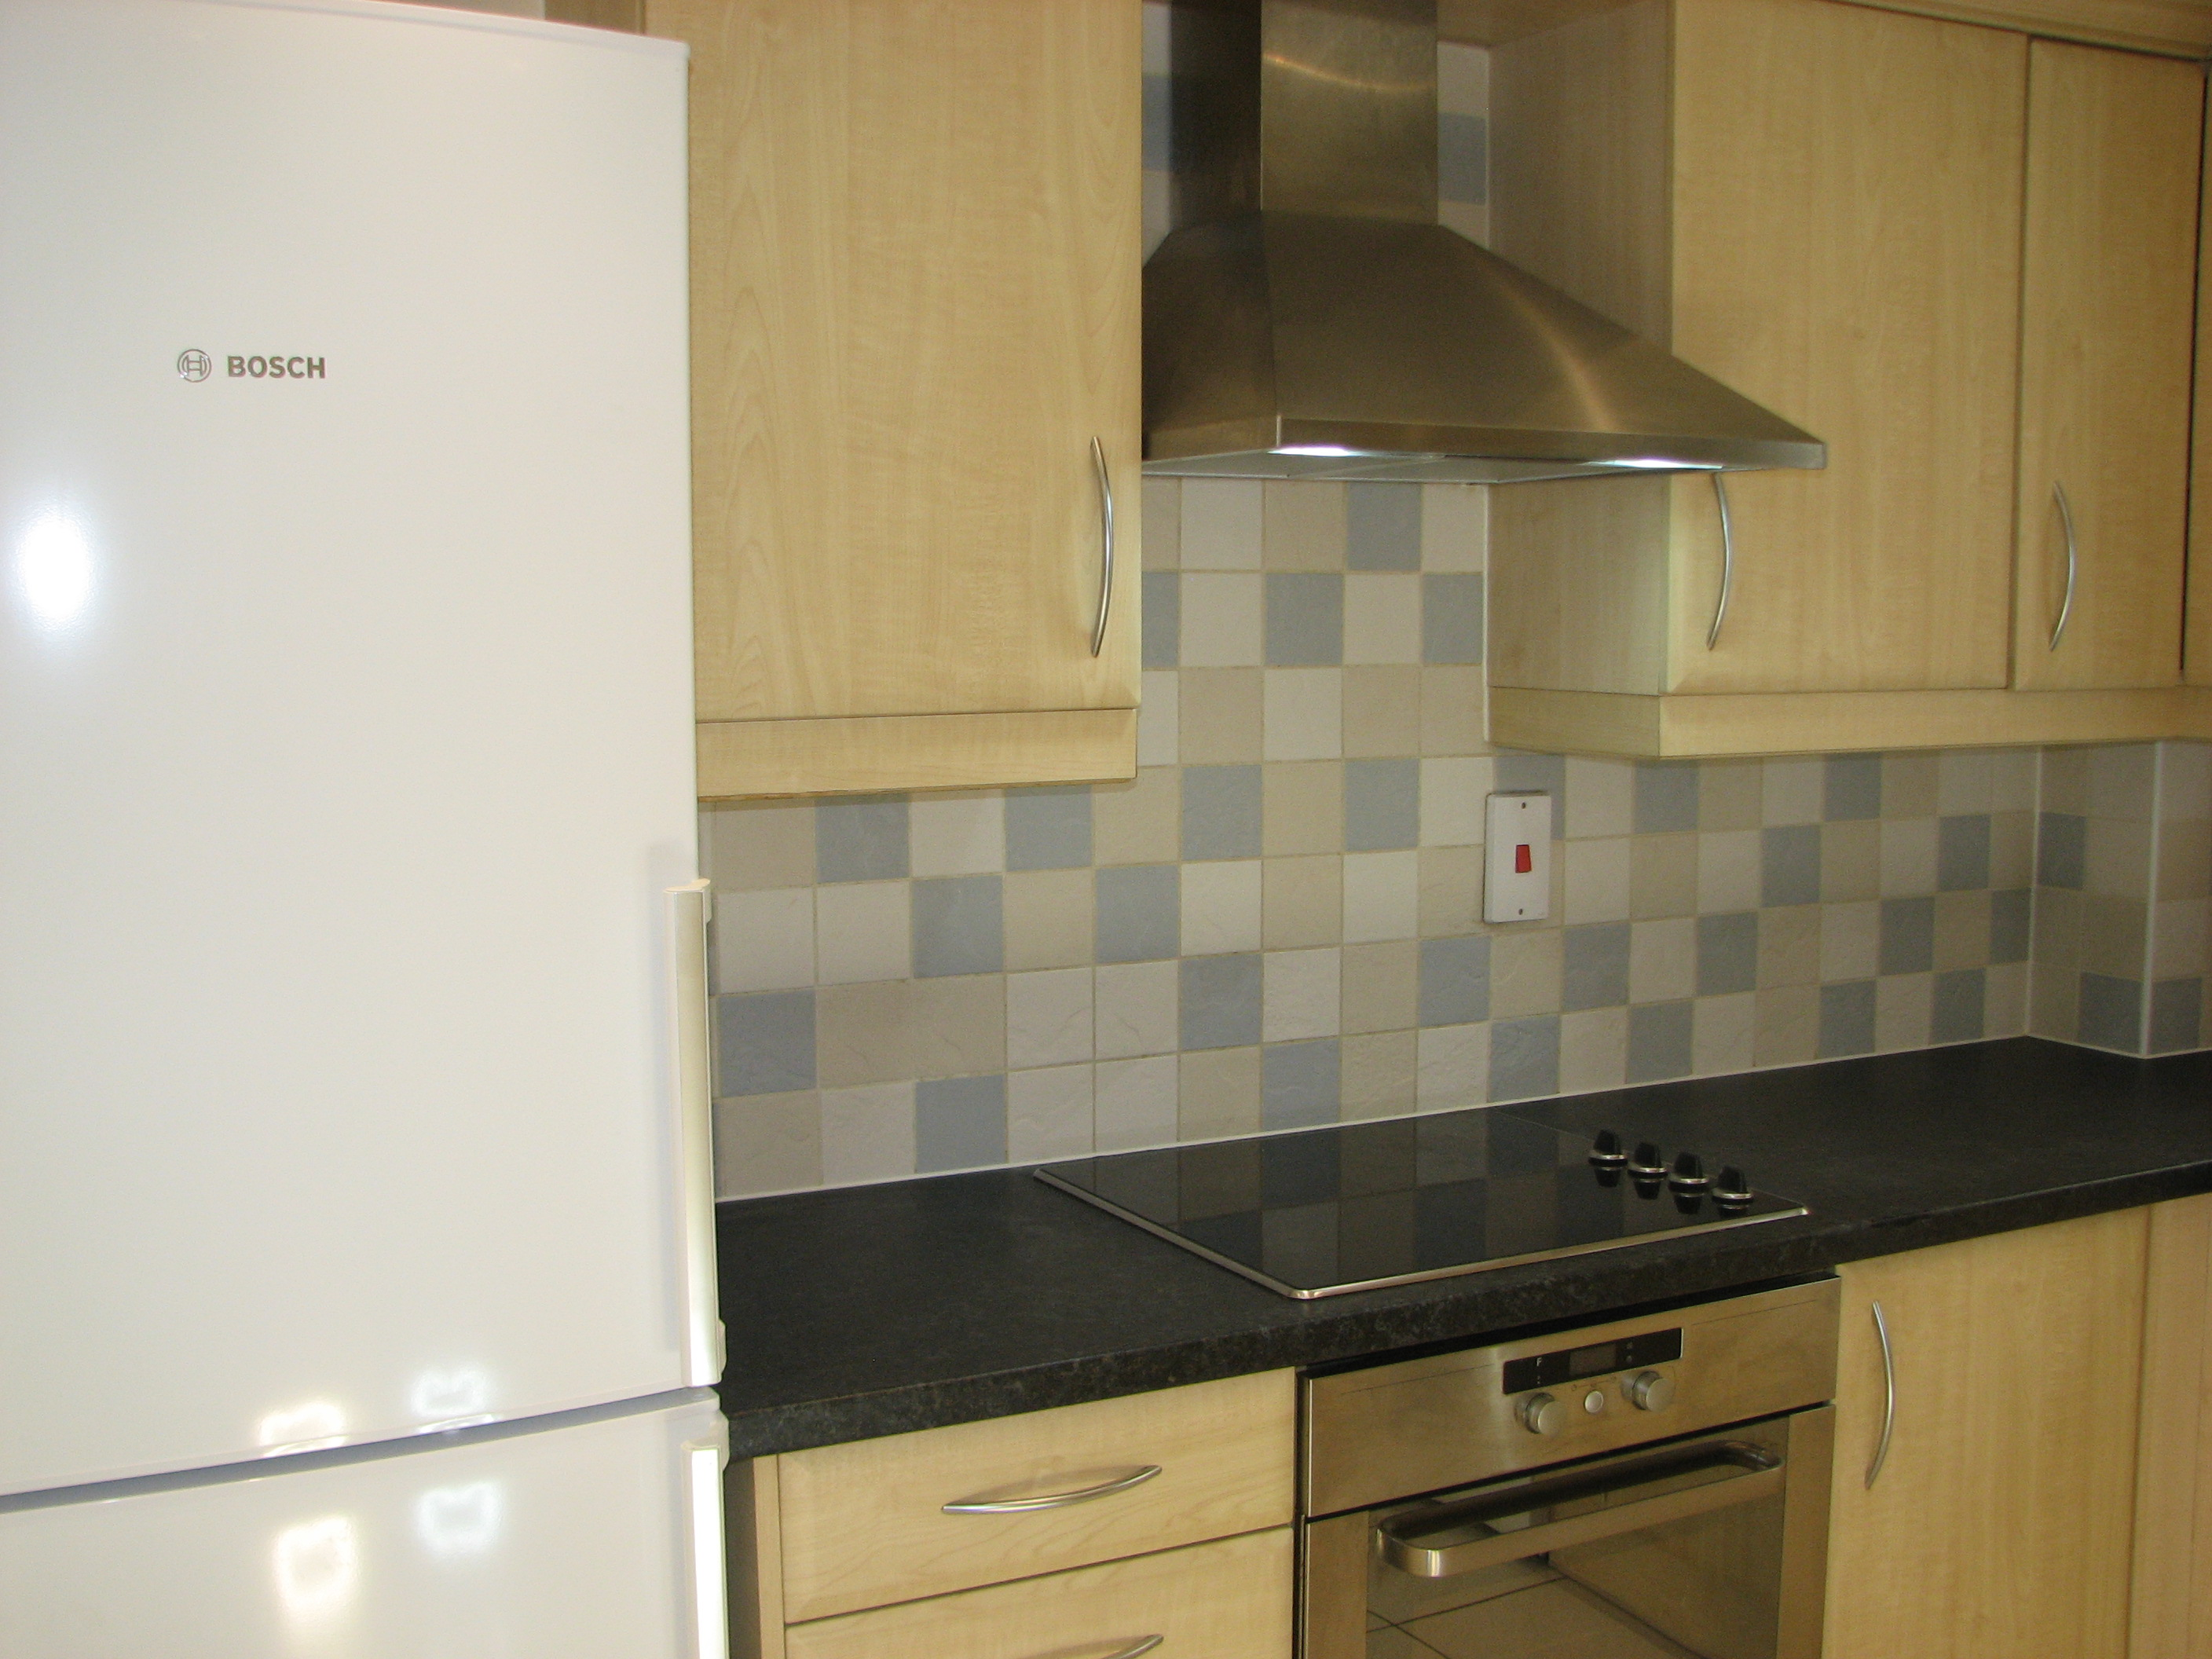 2 Bed Flat to Rent - Brook View, Northampton, NN4 5DR